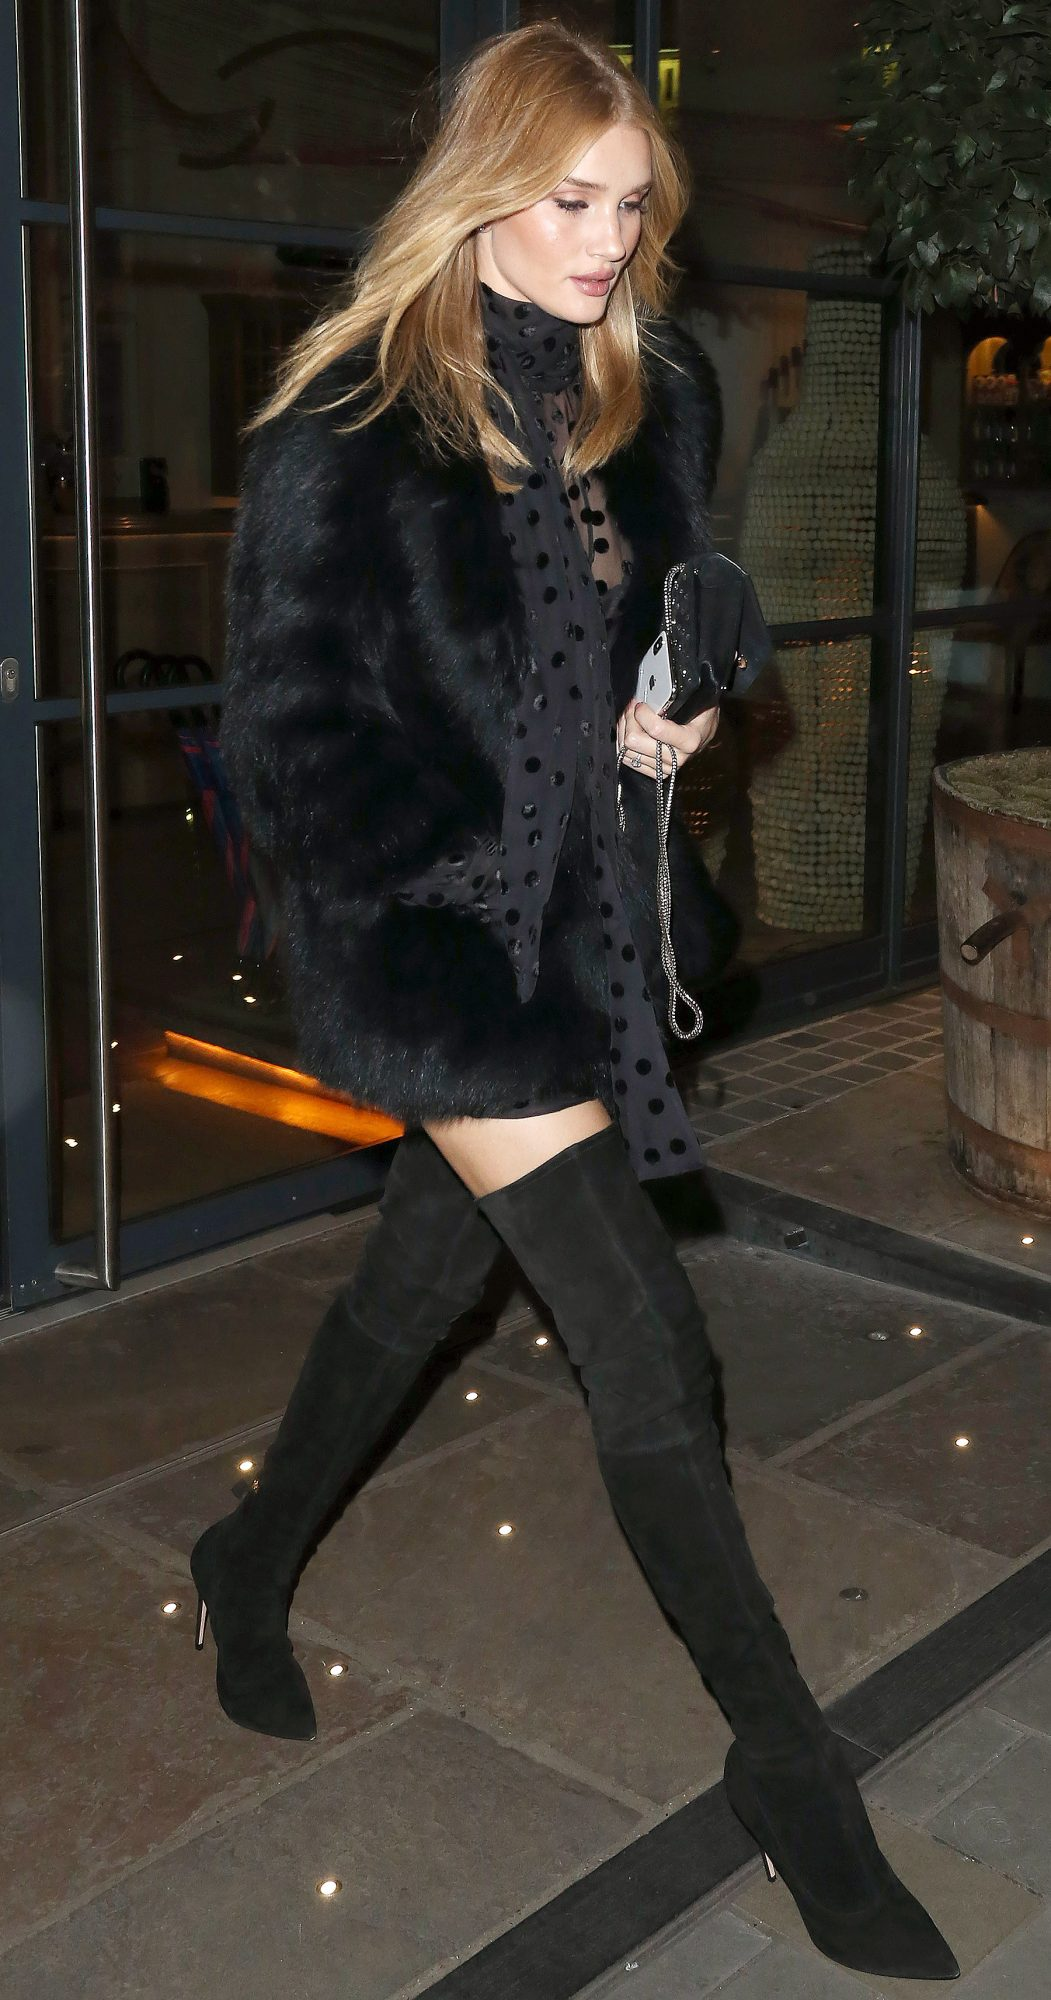 Rosie Huntington-Whiteley is Pictured Leaving Loulou's Private Members Club in Mayfair, London.